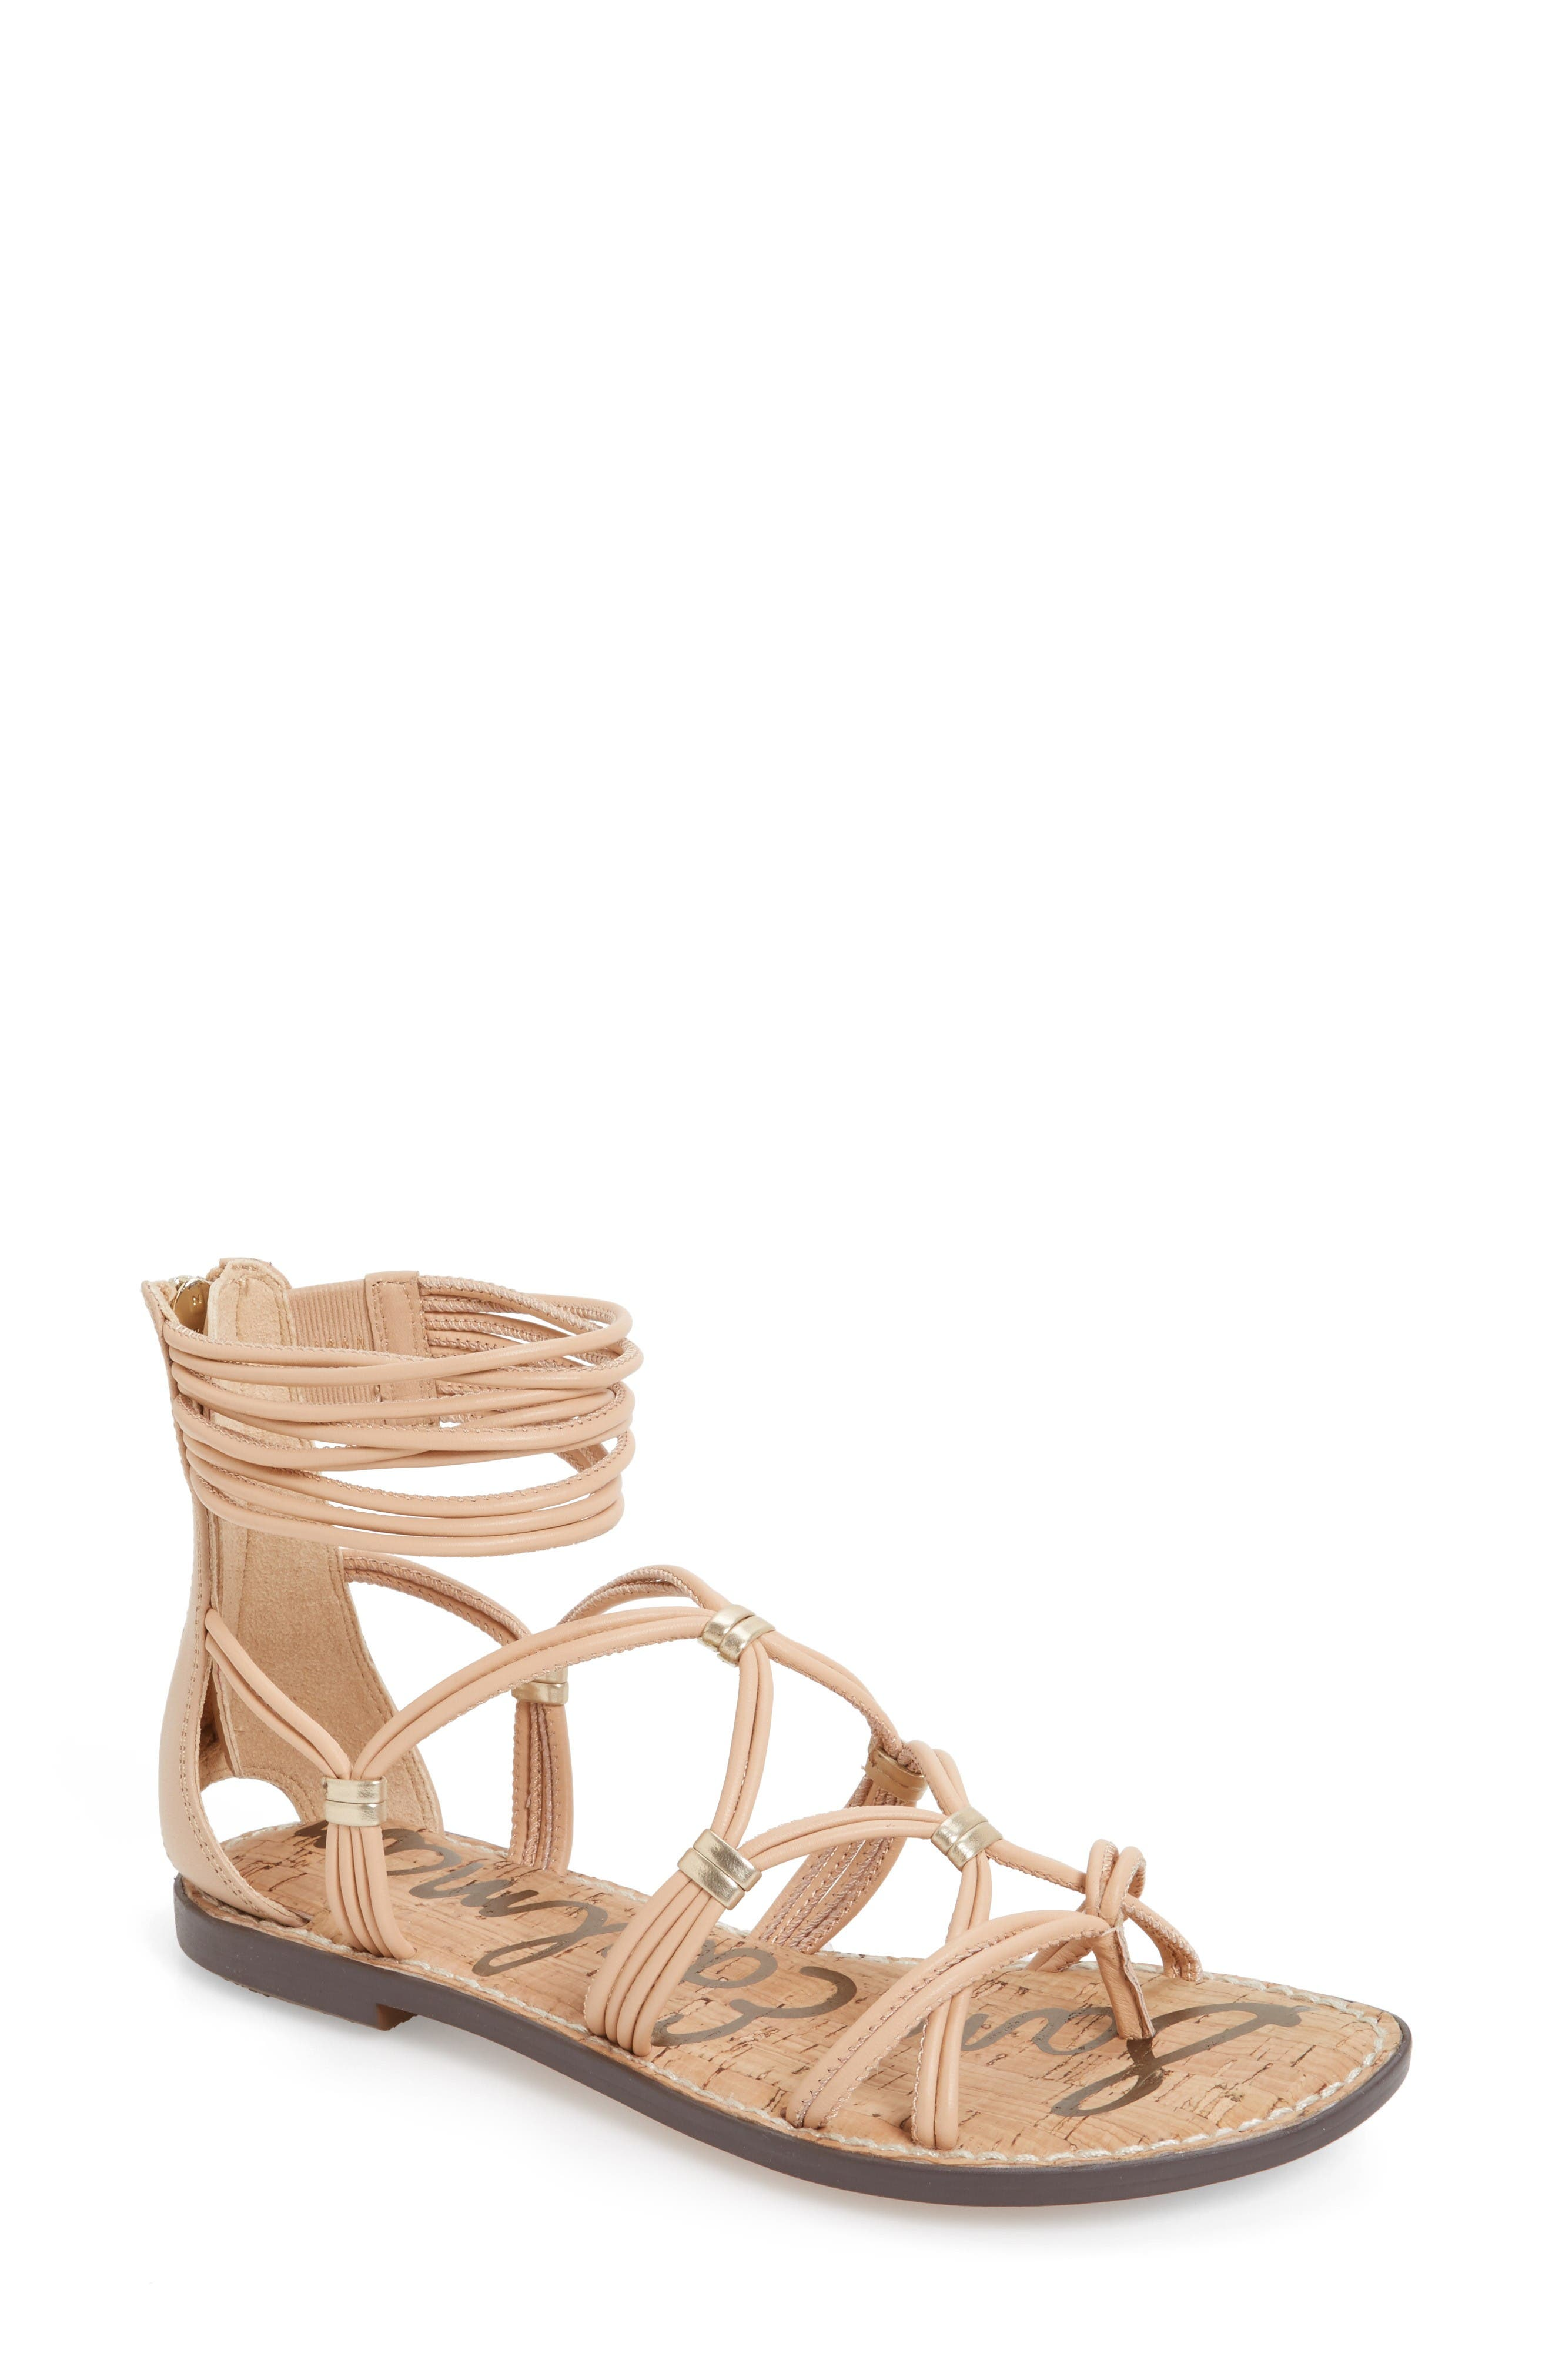 Alternate Image 1 Selected - Sam Edelman Gianni Sandal (Women)